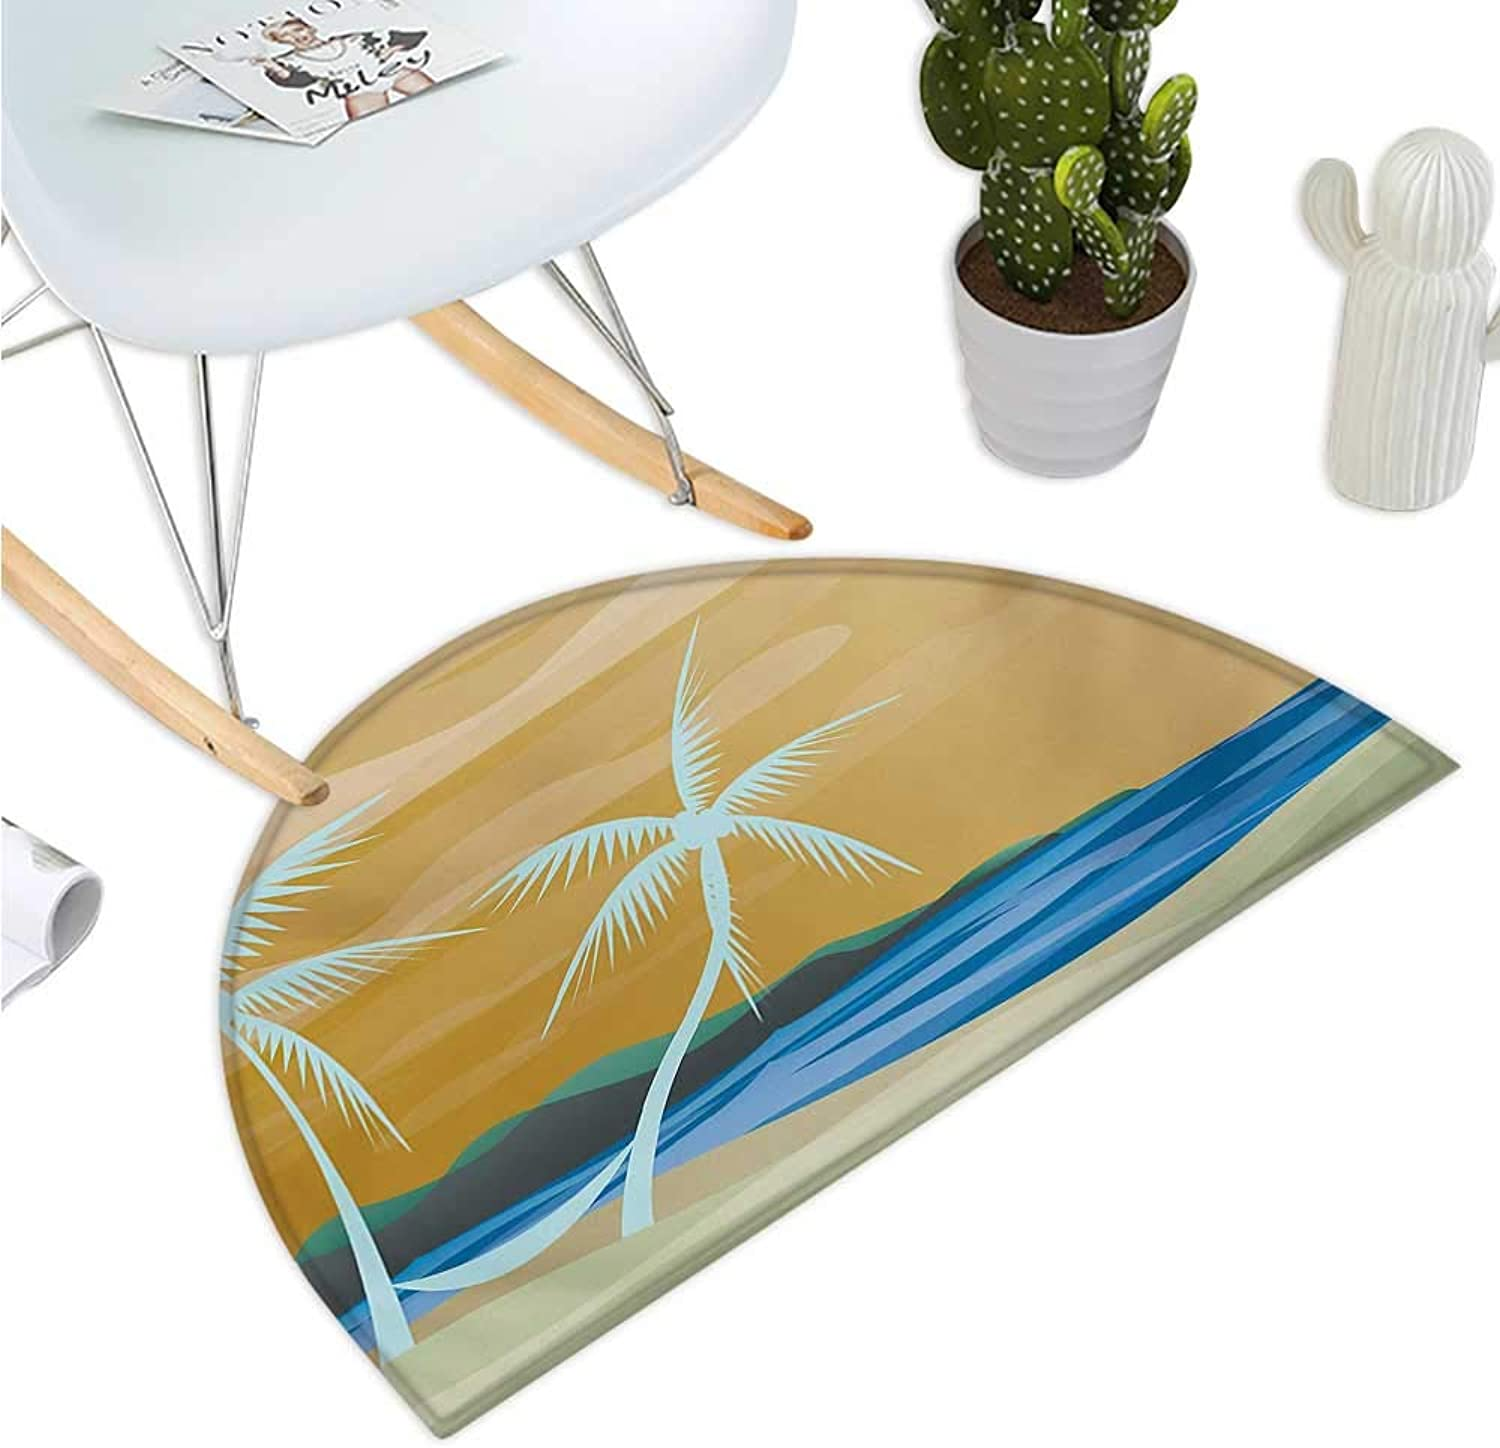 Beach Semicircular Cushion Illustration of Hammock in The Tropical Sandy Beach with Exotic color Ocean Print Entry Door Mat H 43.3  xD 64.9  Navy Cream